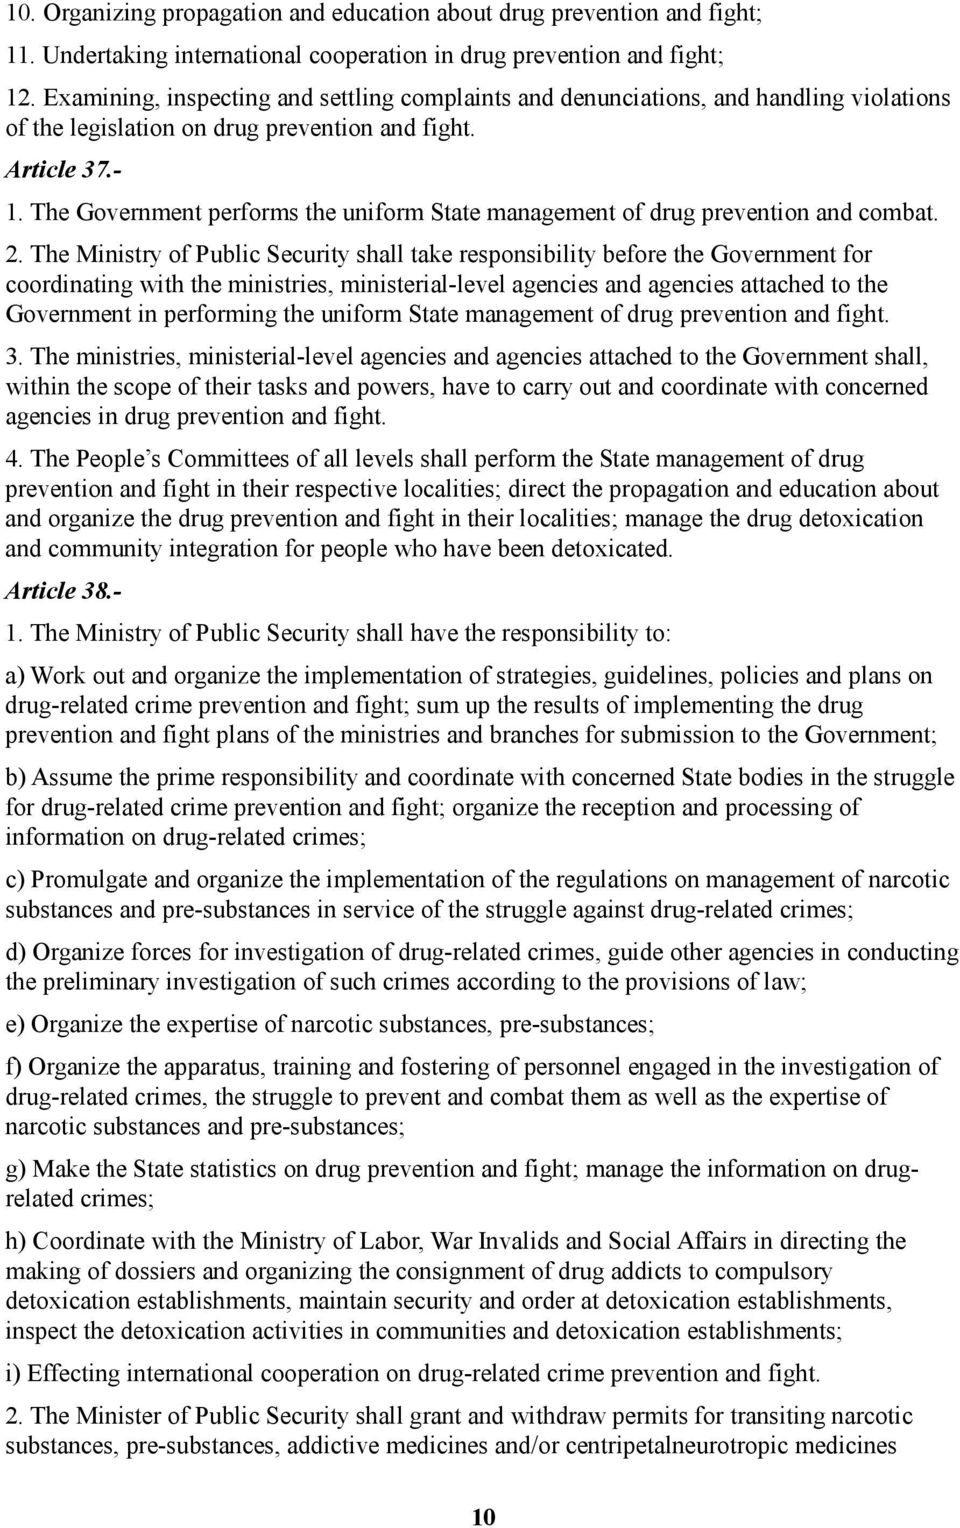 The Government performs the uniform State management of drug prevention and combat. 2.